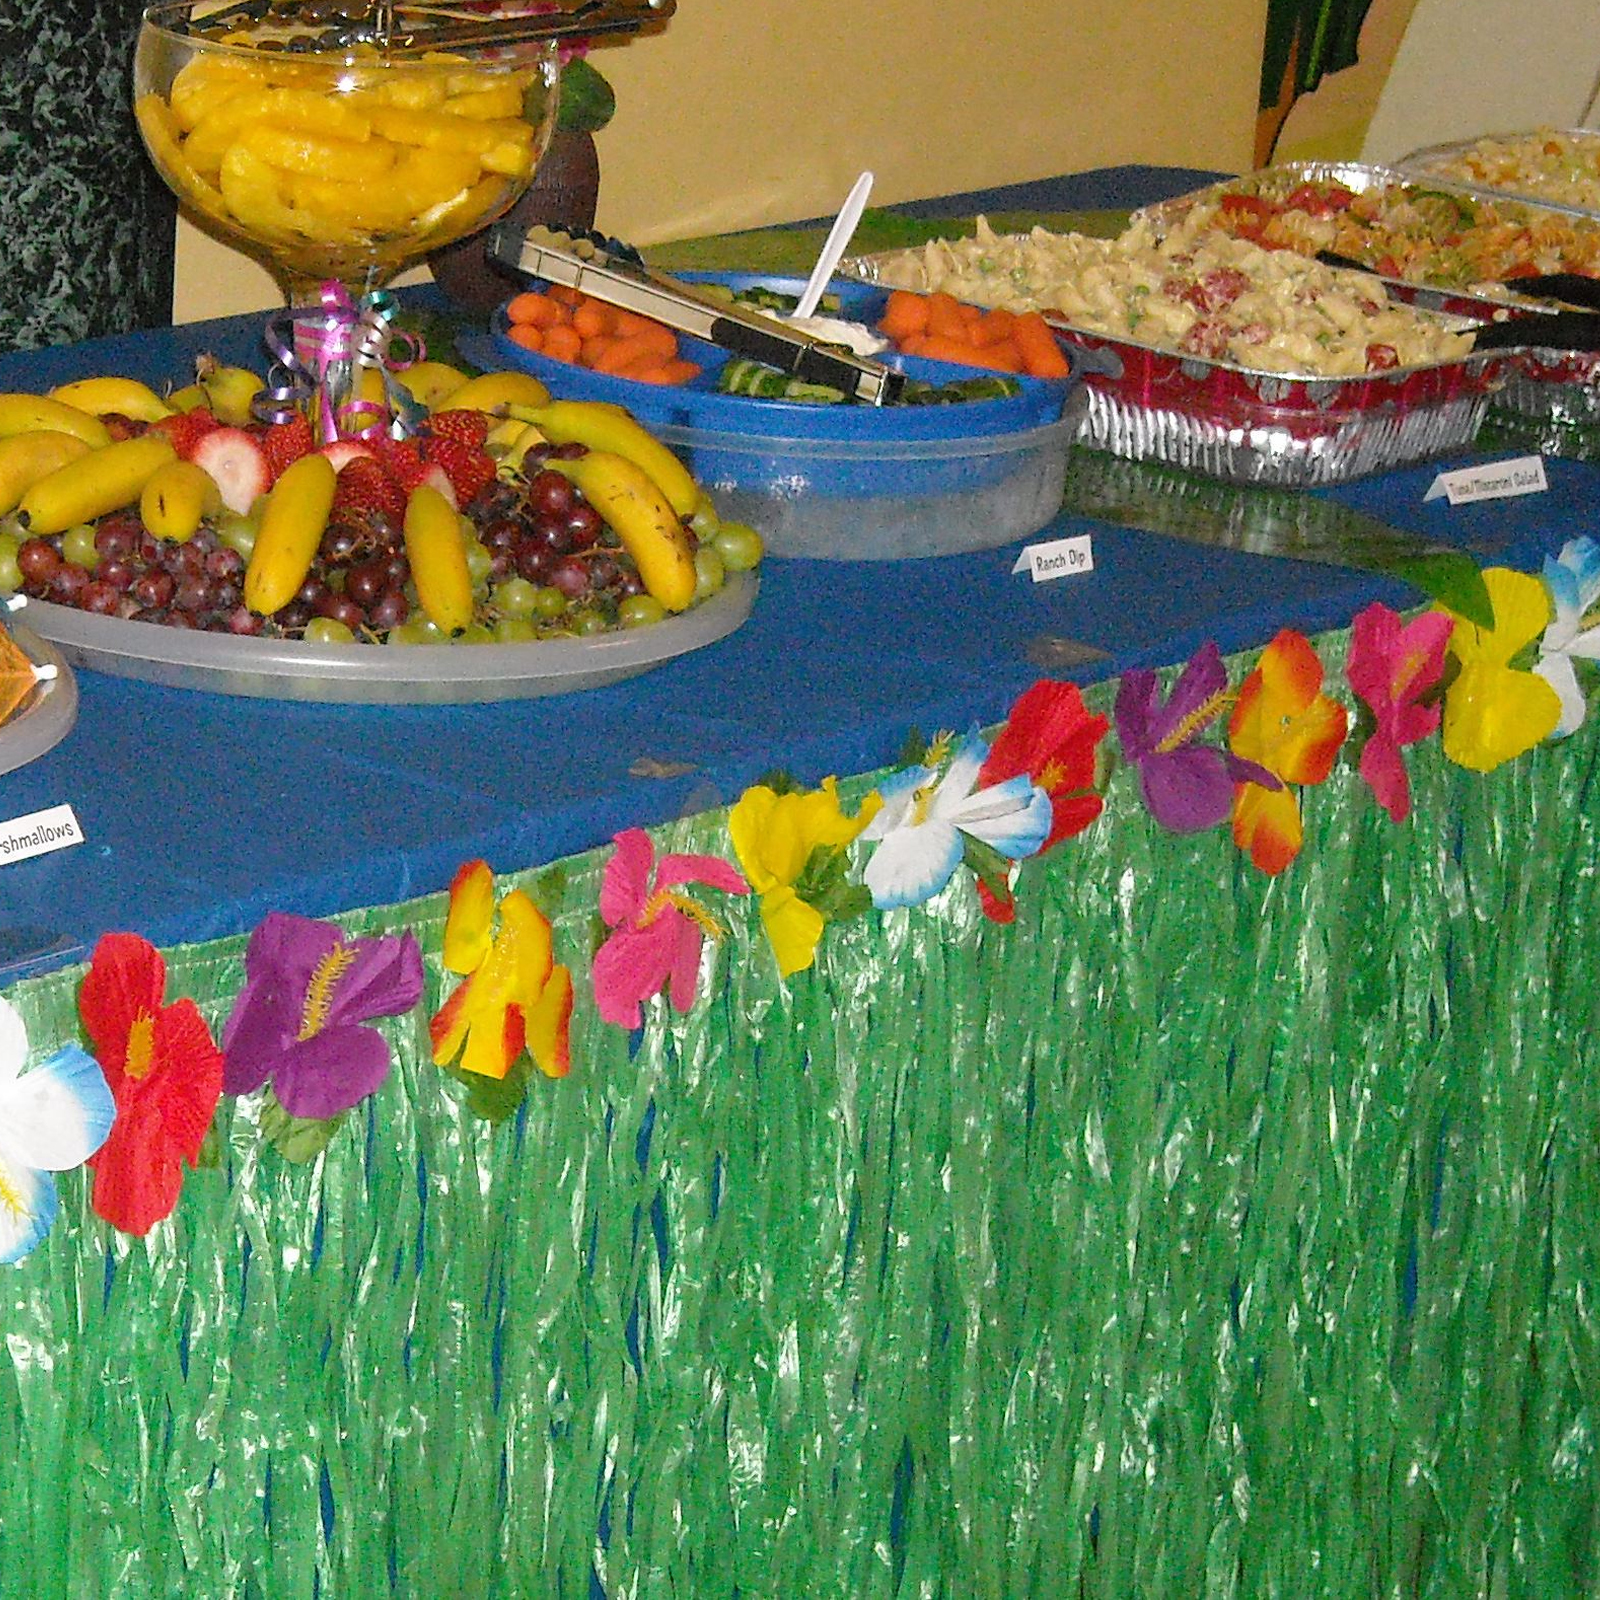 Hawaiian Luau Pool Hibiscus Green Table Grass Flower Skirt